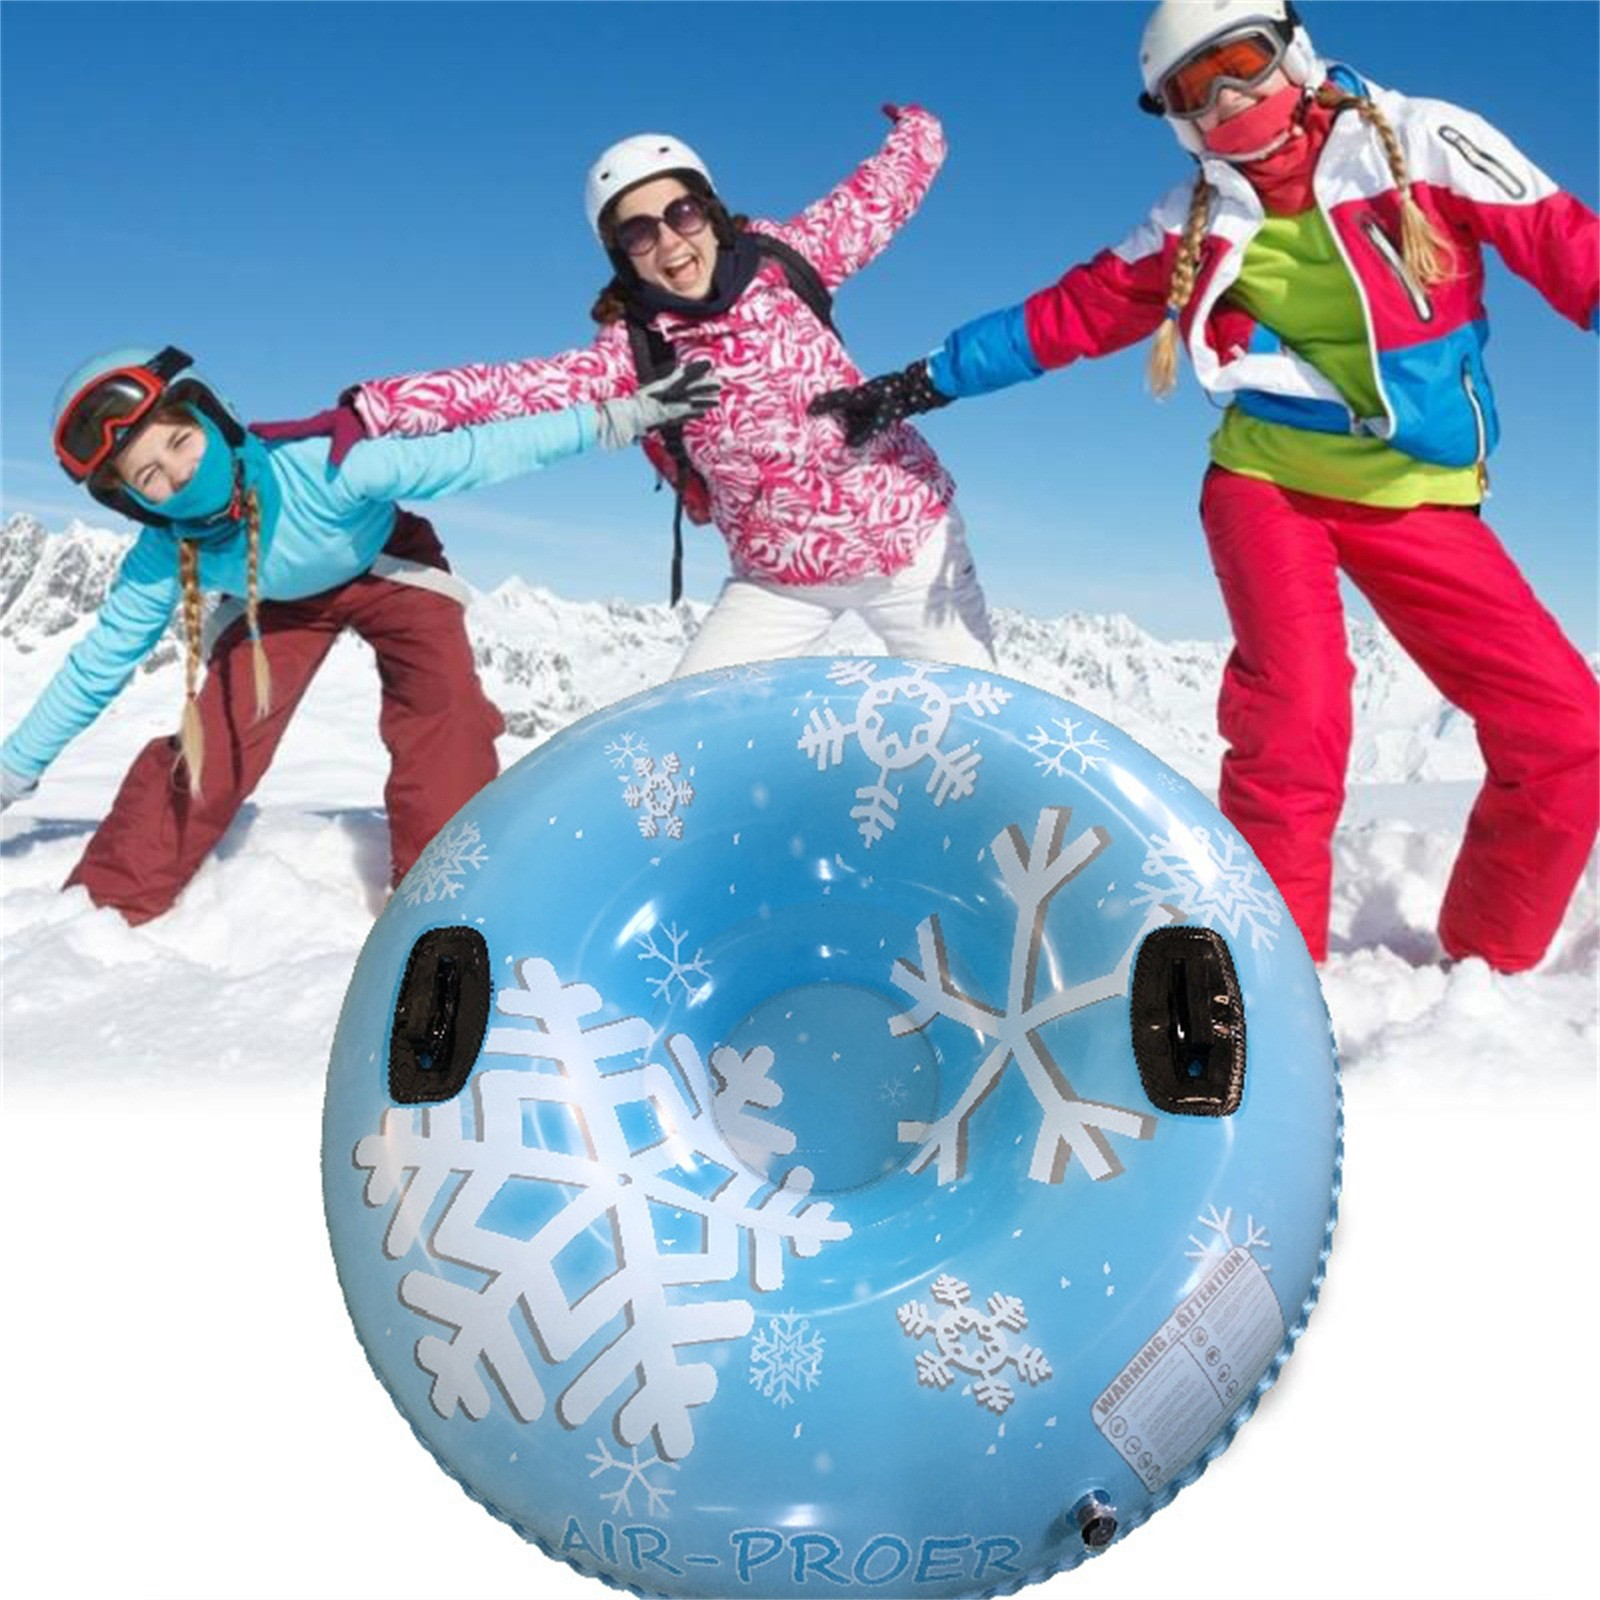 Ski Circle with Handle Inflatable ski ring Snow tube Thickened version high-quality more Durable suitable for children and adult